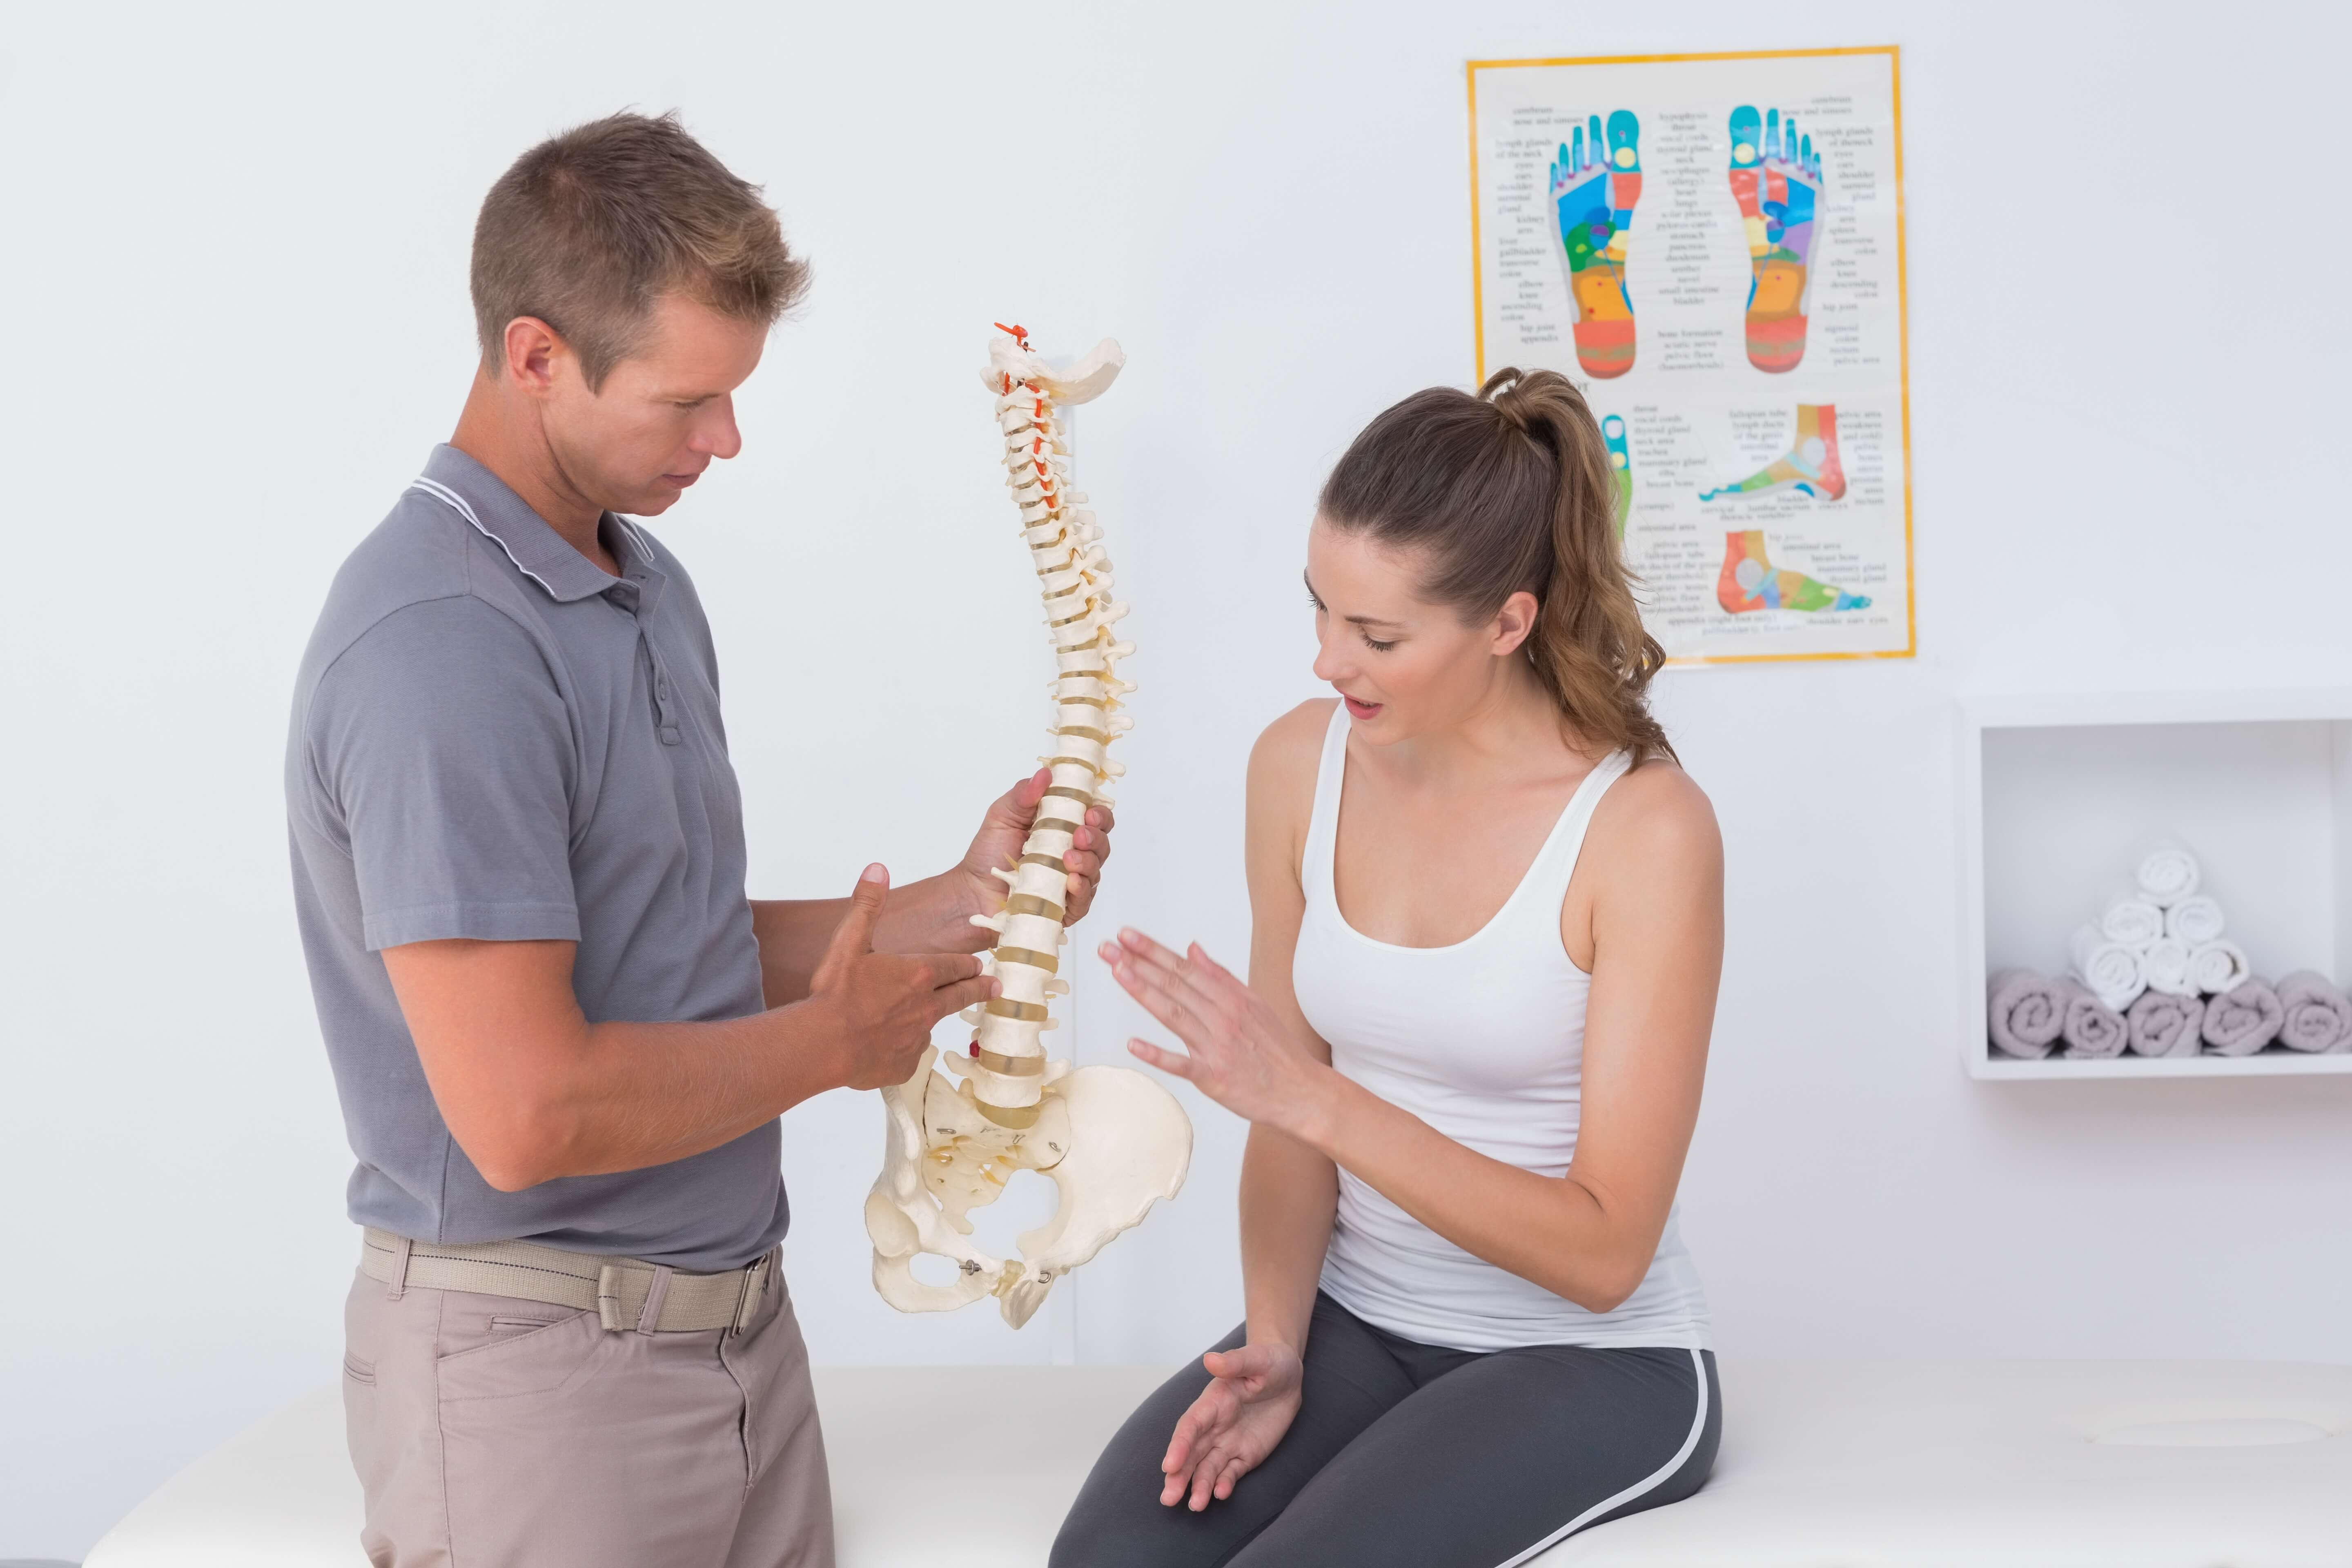 Herniated disks can cause your back pain - fix it with physical therapy